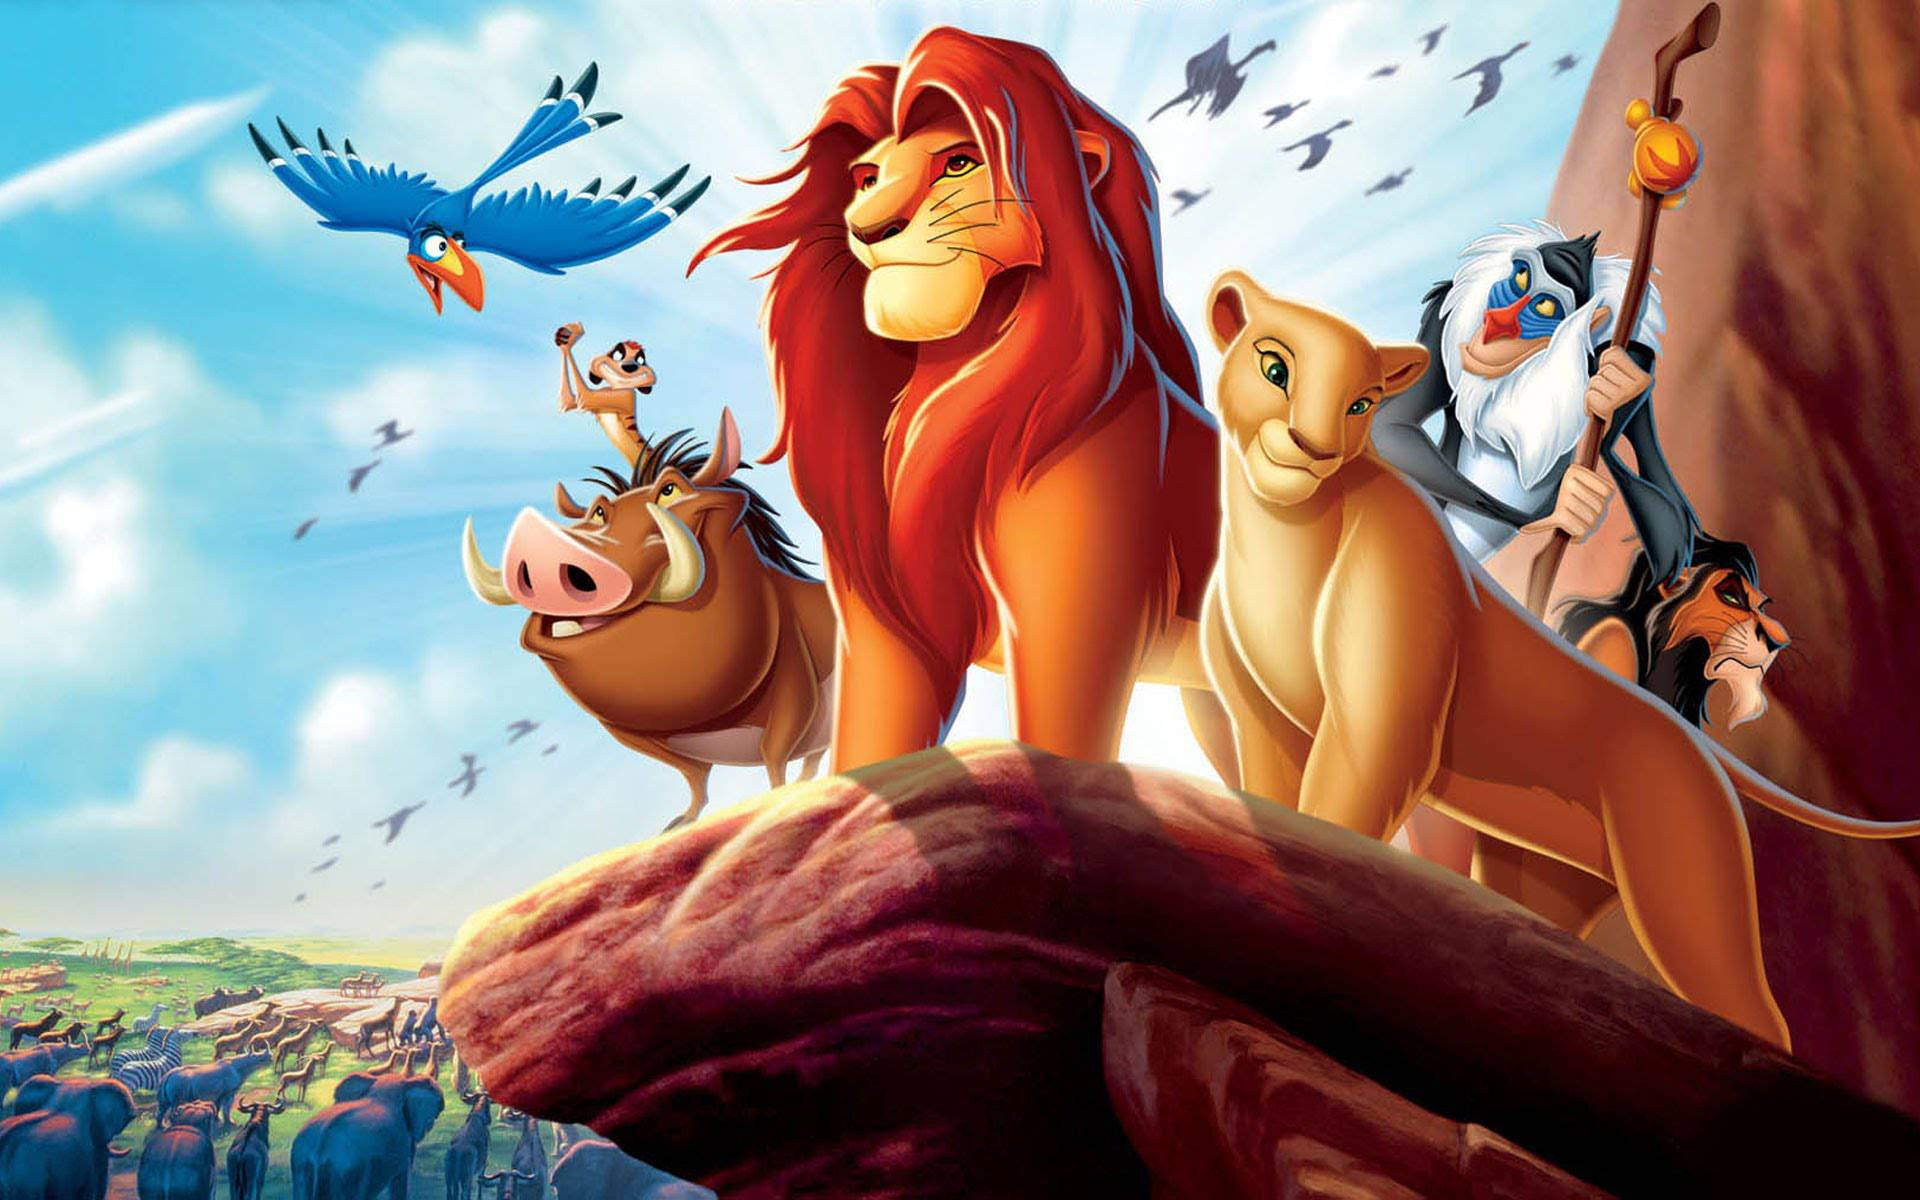 Disney Reveals More Details on 'The Lion King' Remake